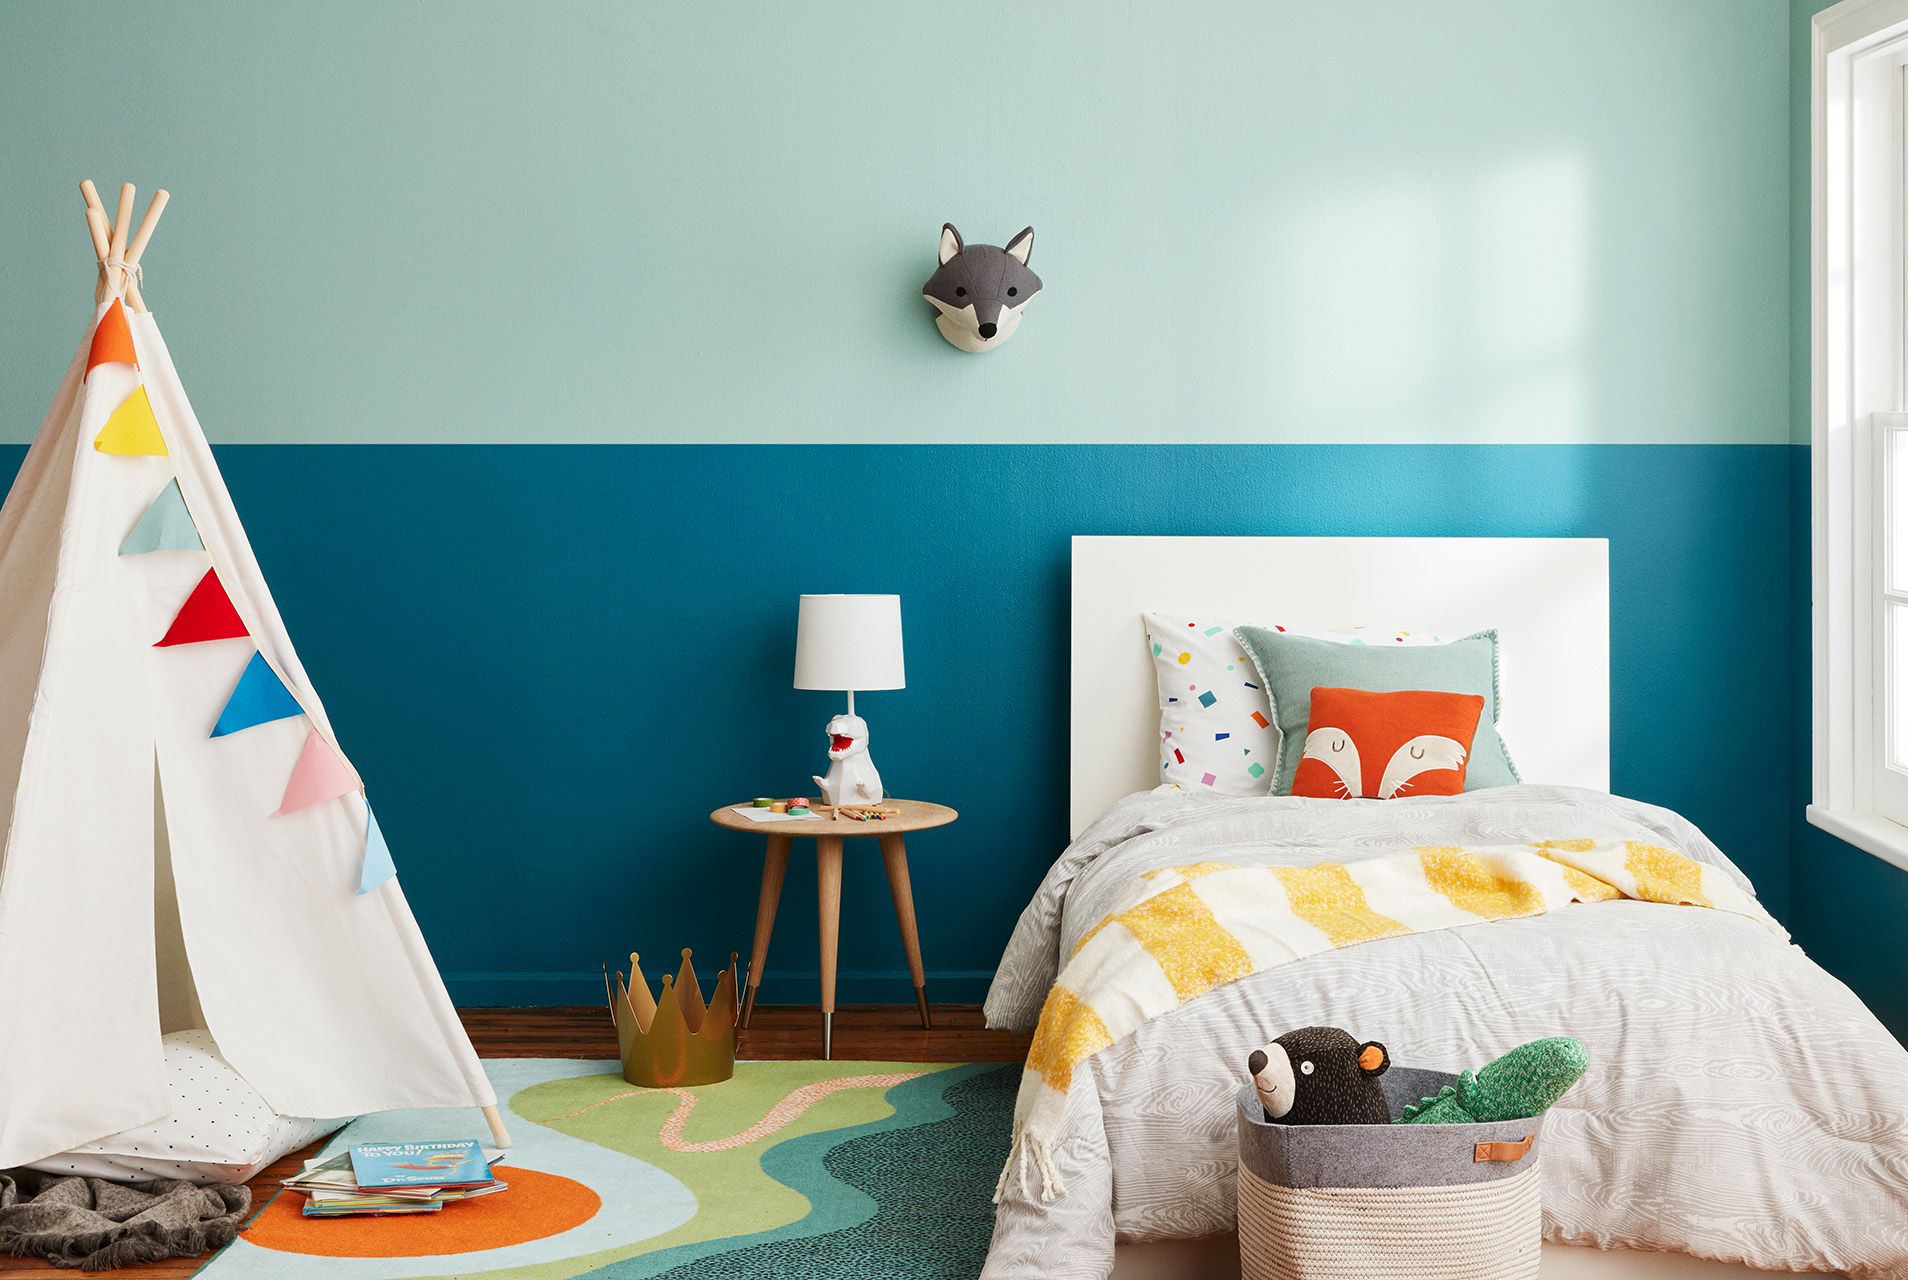 How to Choose a Youthful Paint Color for Your Child's Room That Still Complements the Rest of Your Home